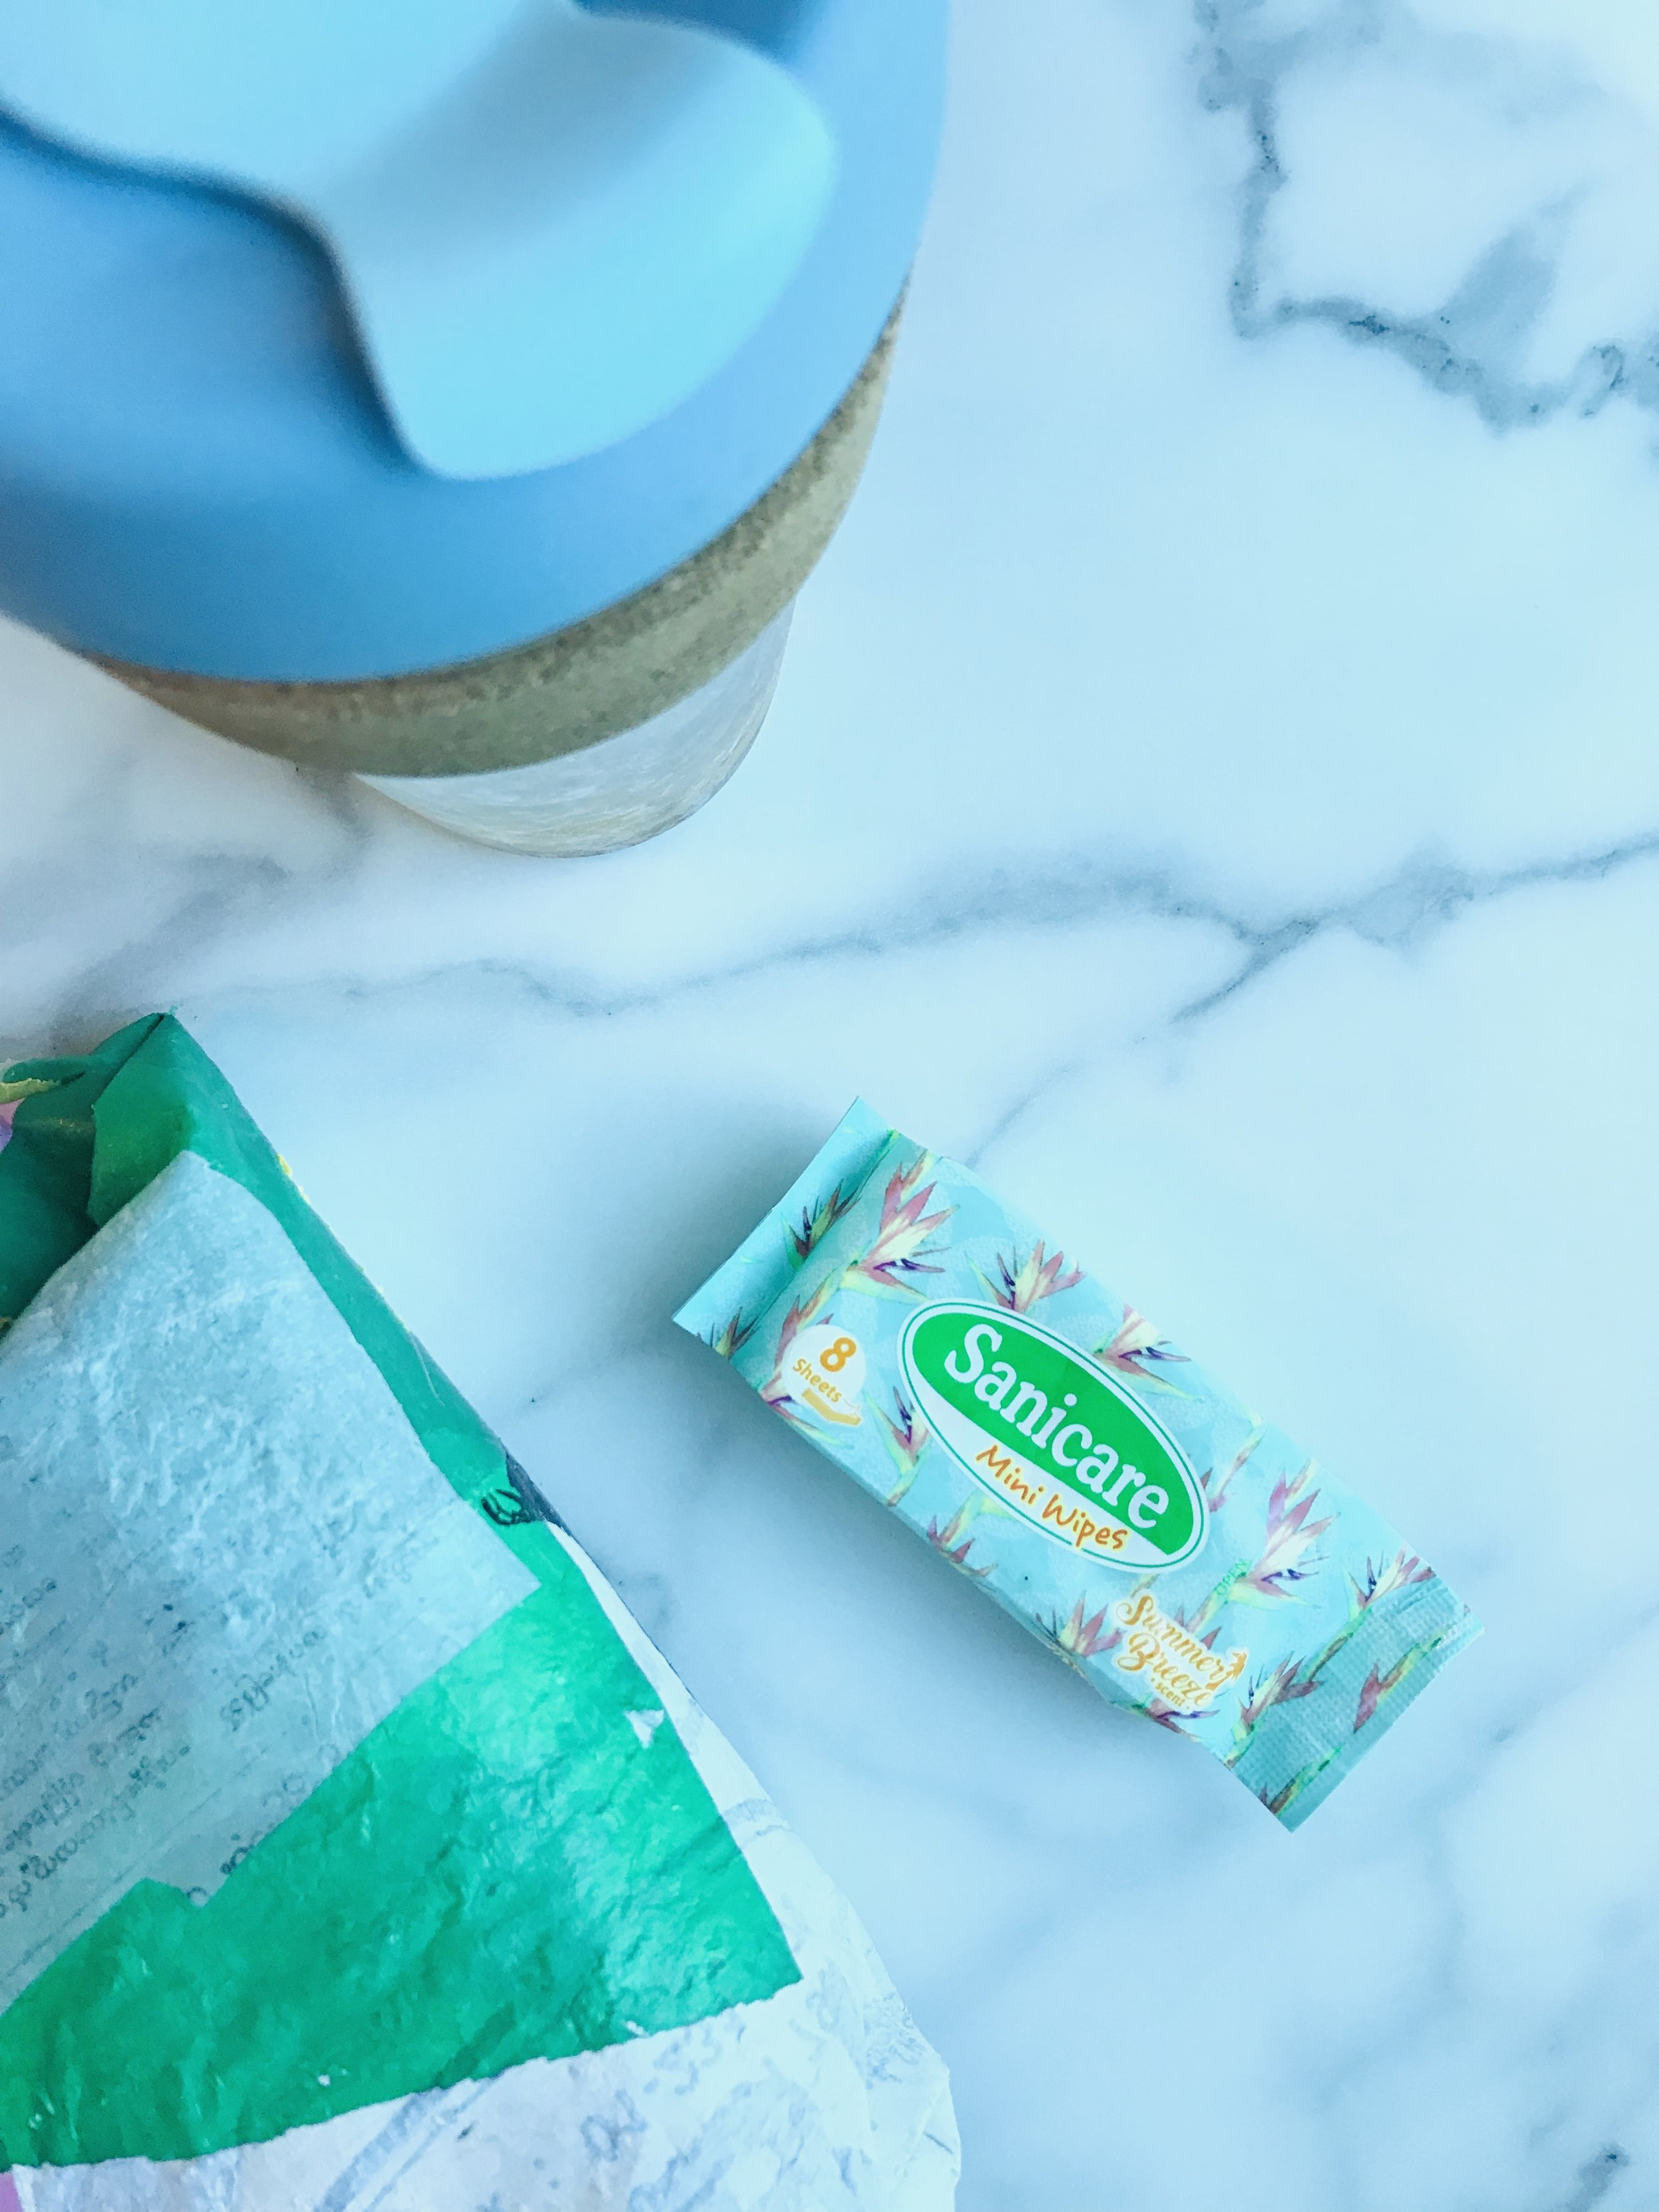 - The design print, size and usability of these sanicare wipes make my momma heart swoon. silly, i know.